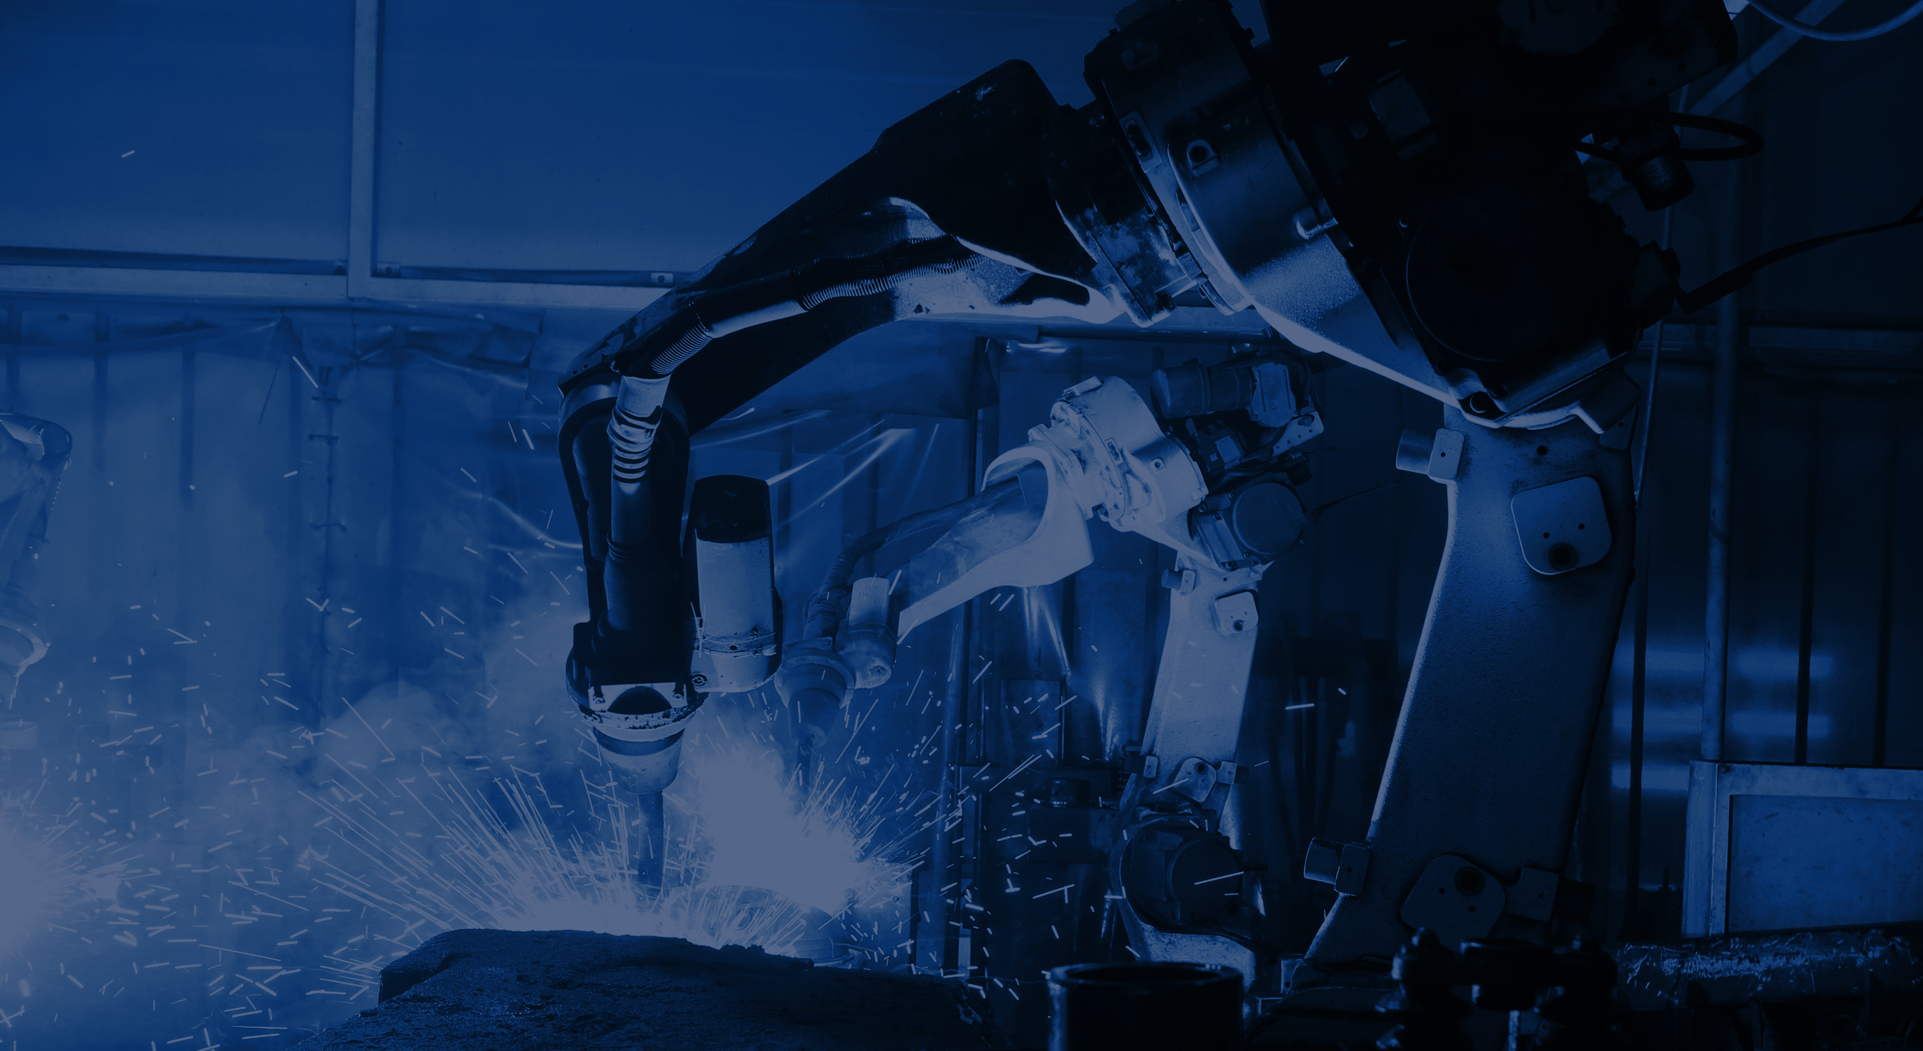 Industrial Robots – March 2021